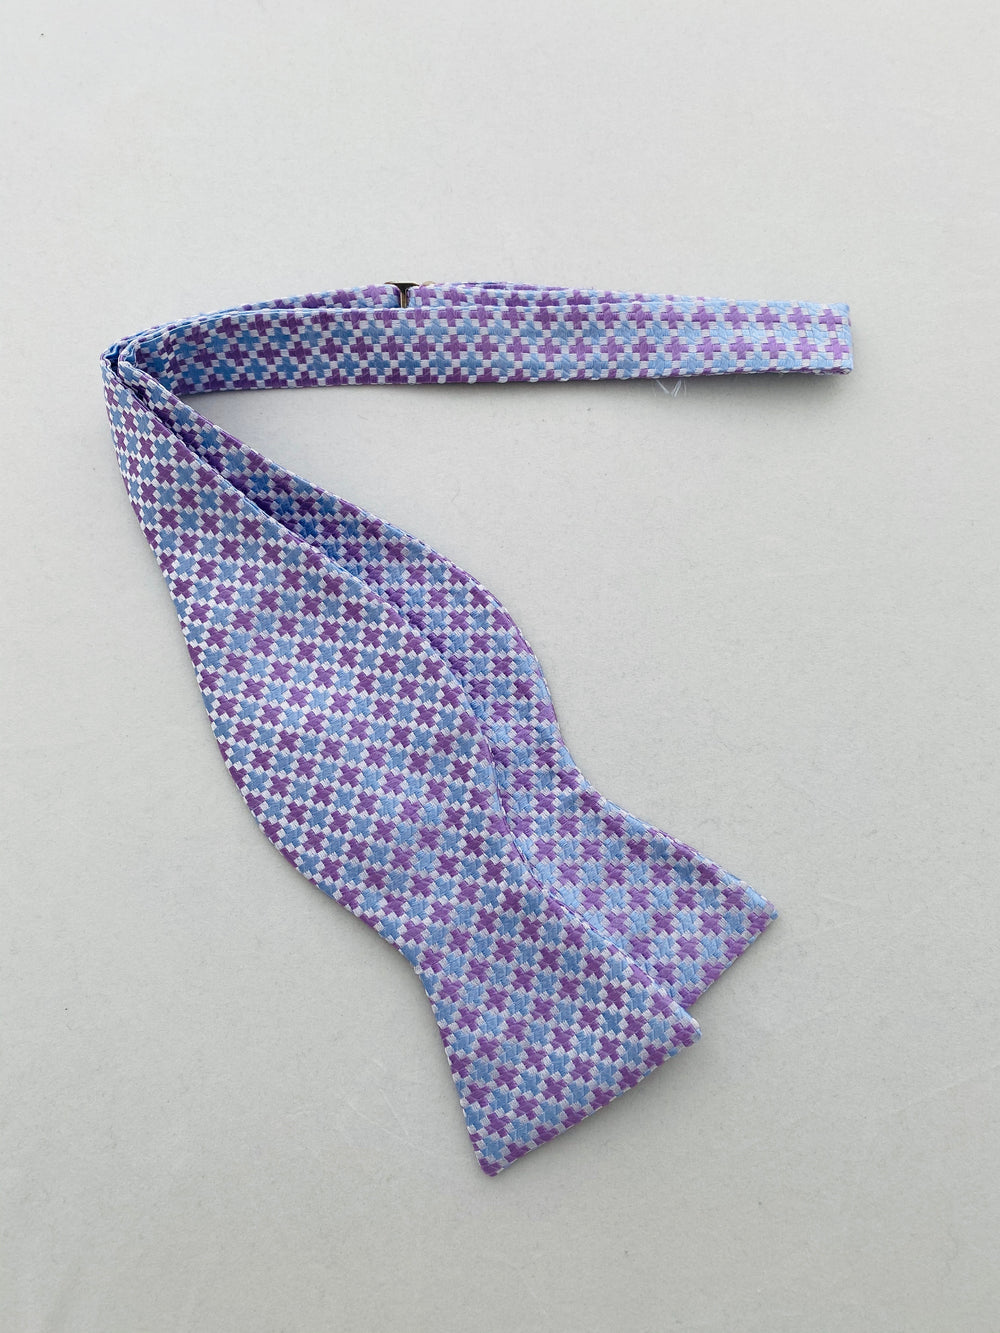 MCM Studio Bow Tie Made In Italy by Fratellini Lilac Sky Cross